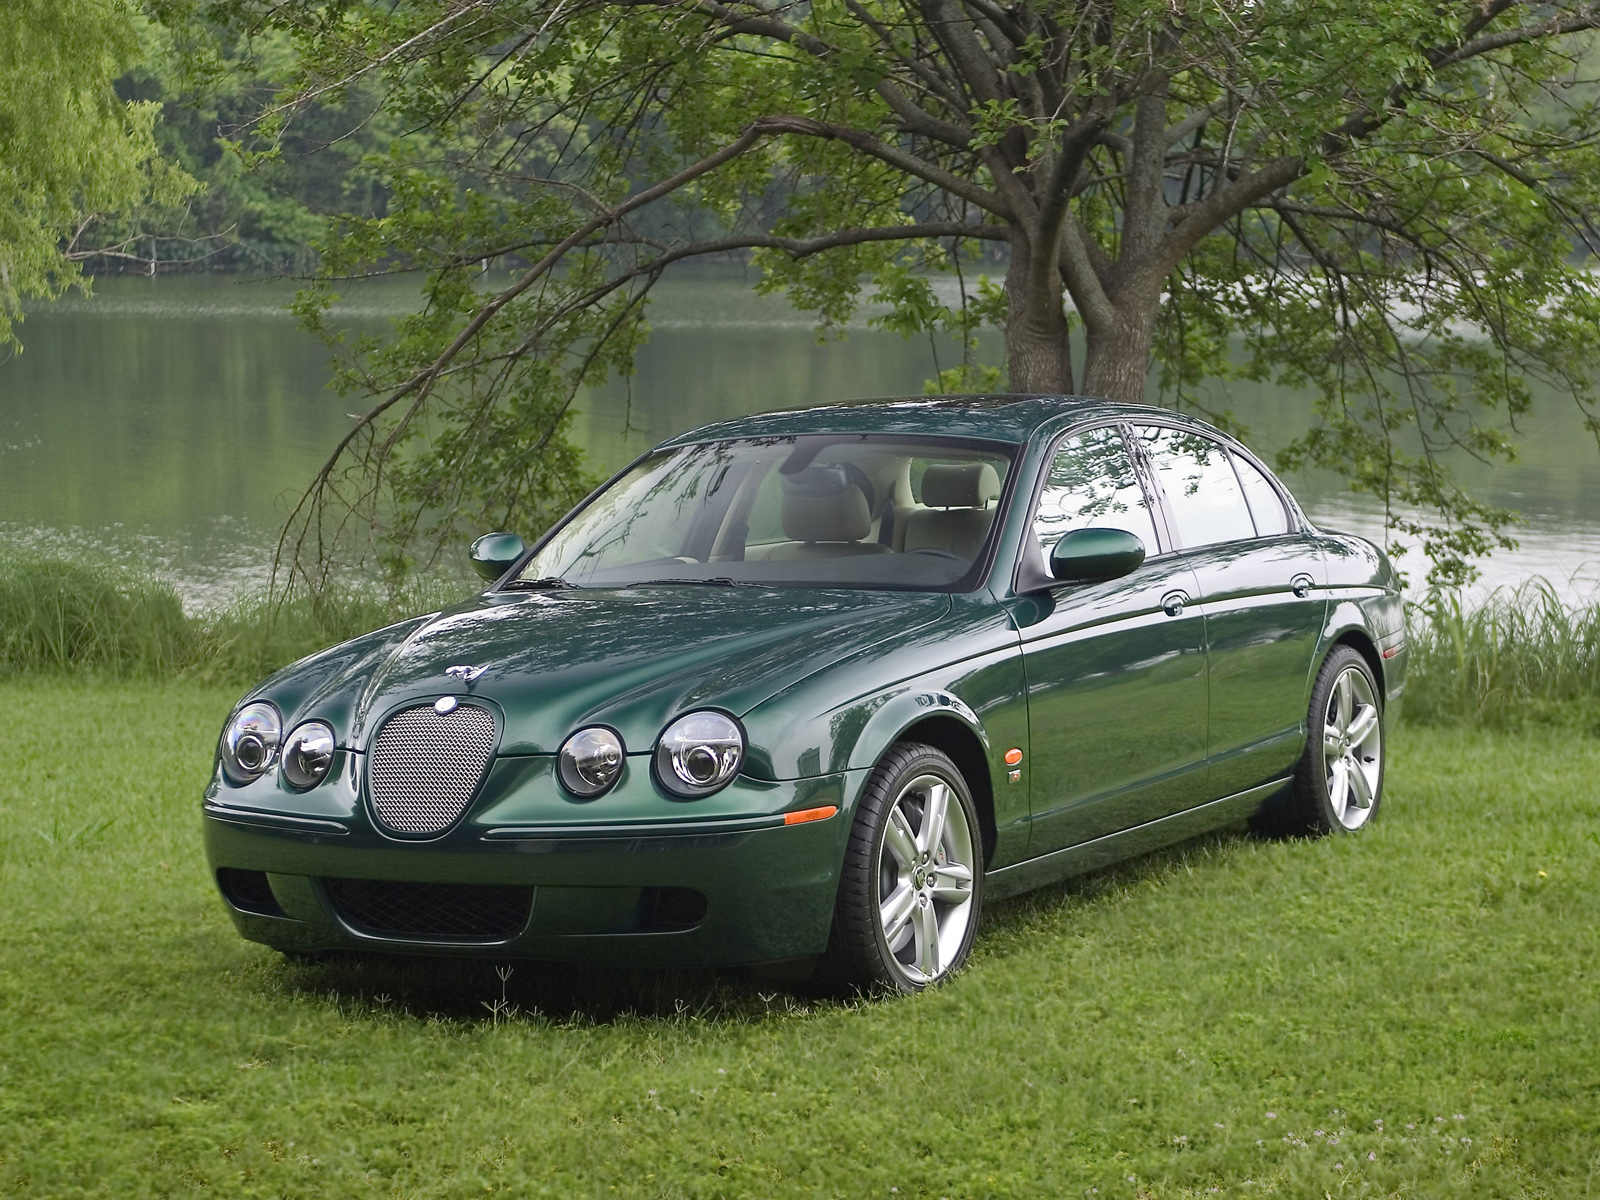 Jaguar s-type photo - 5